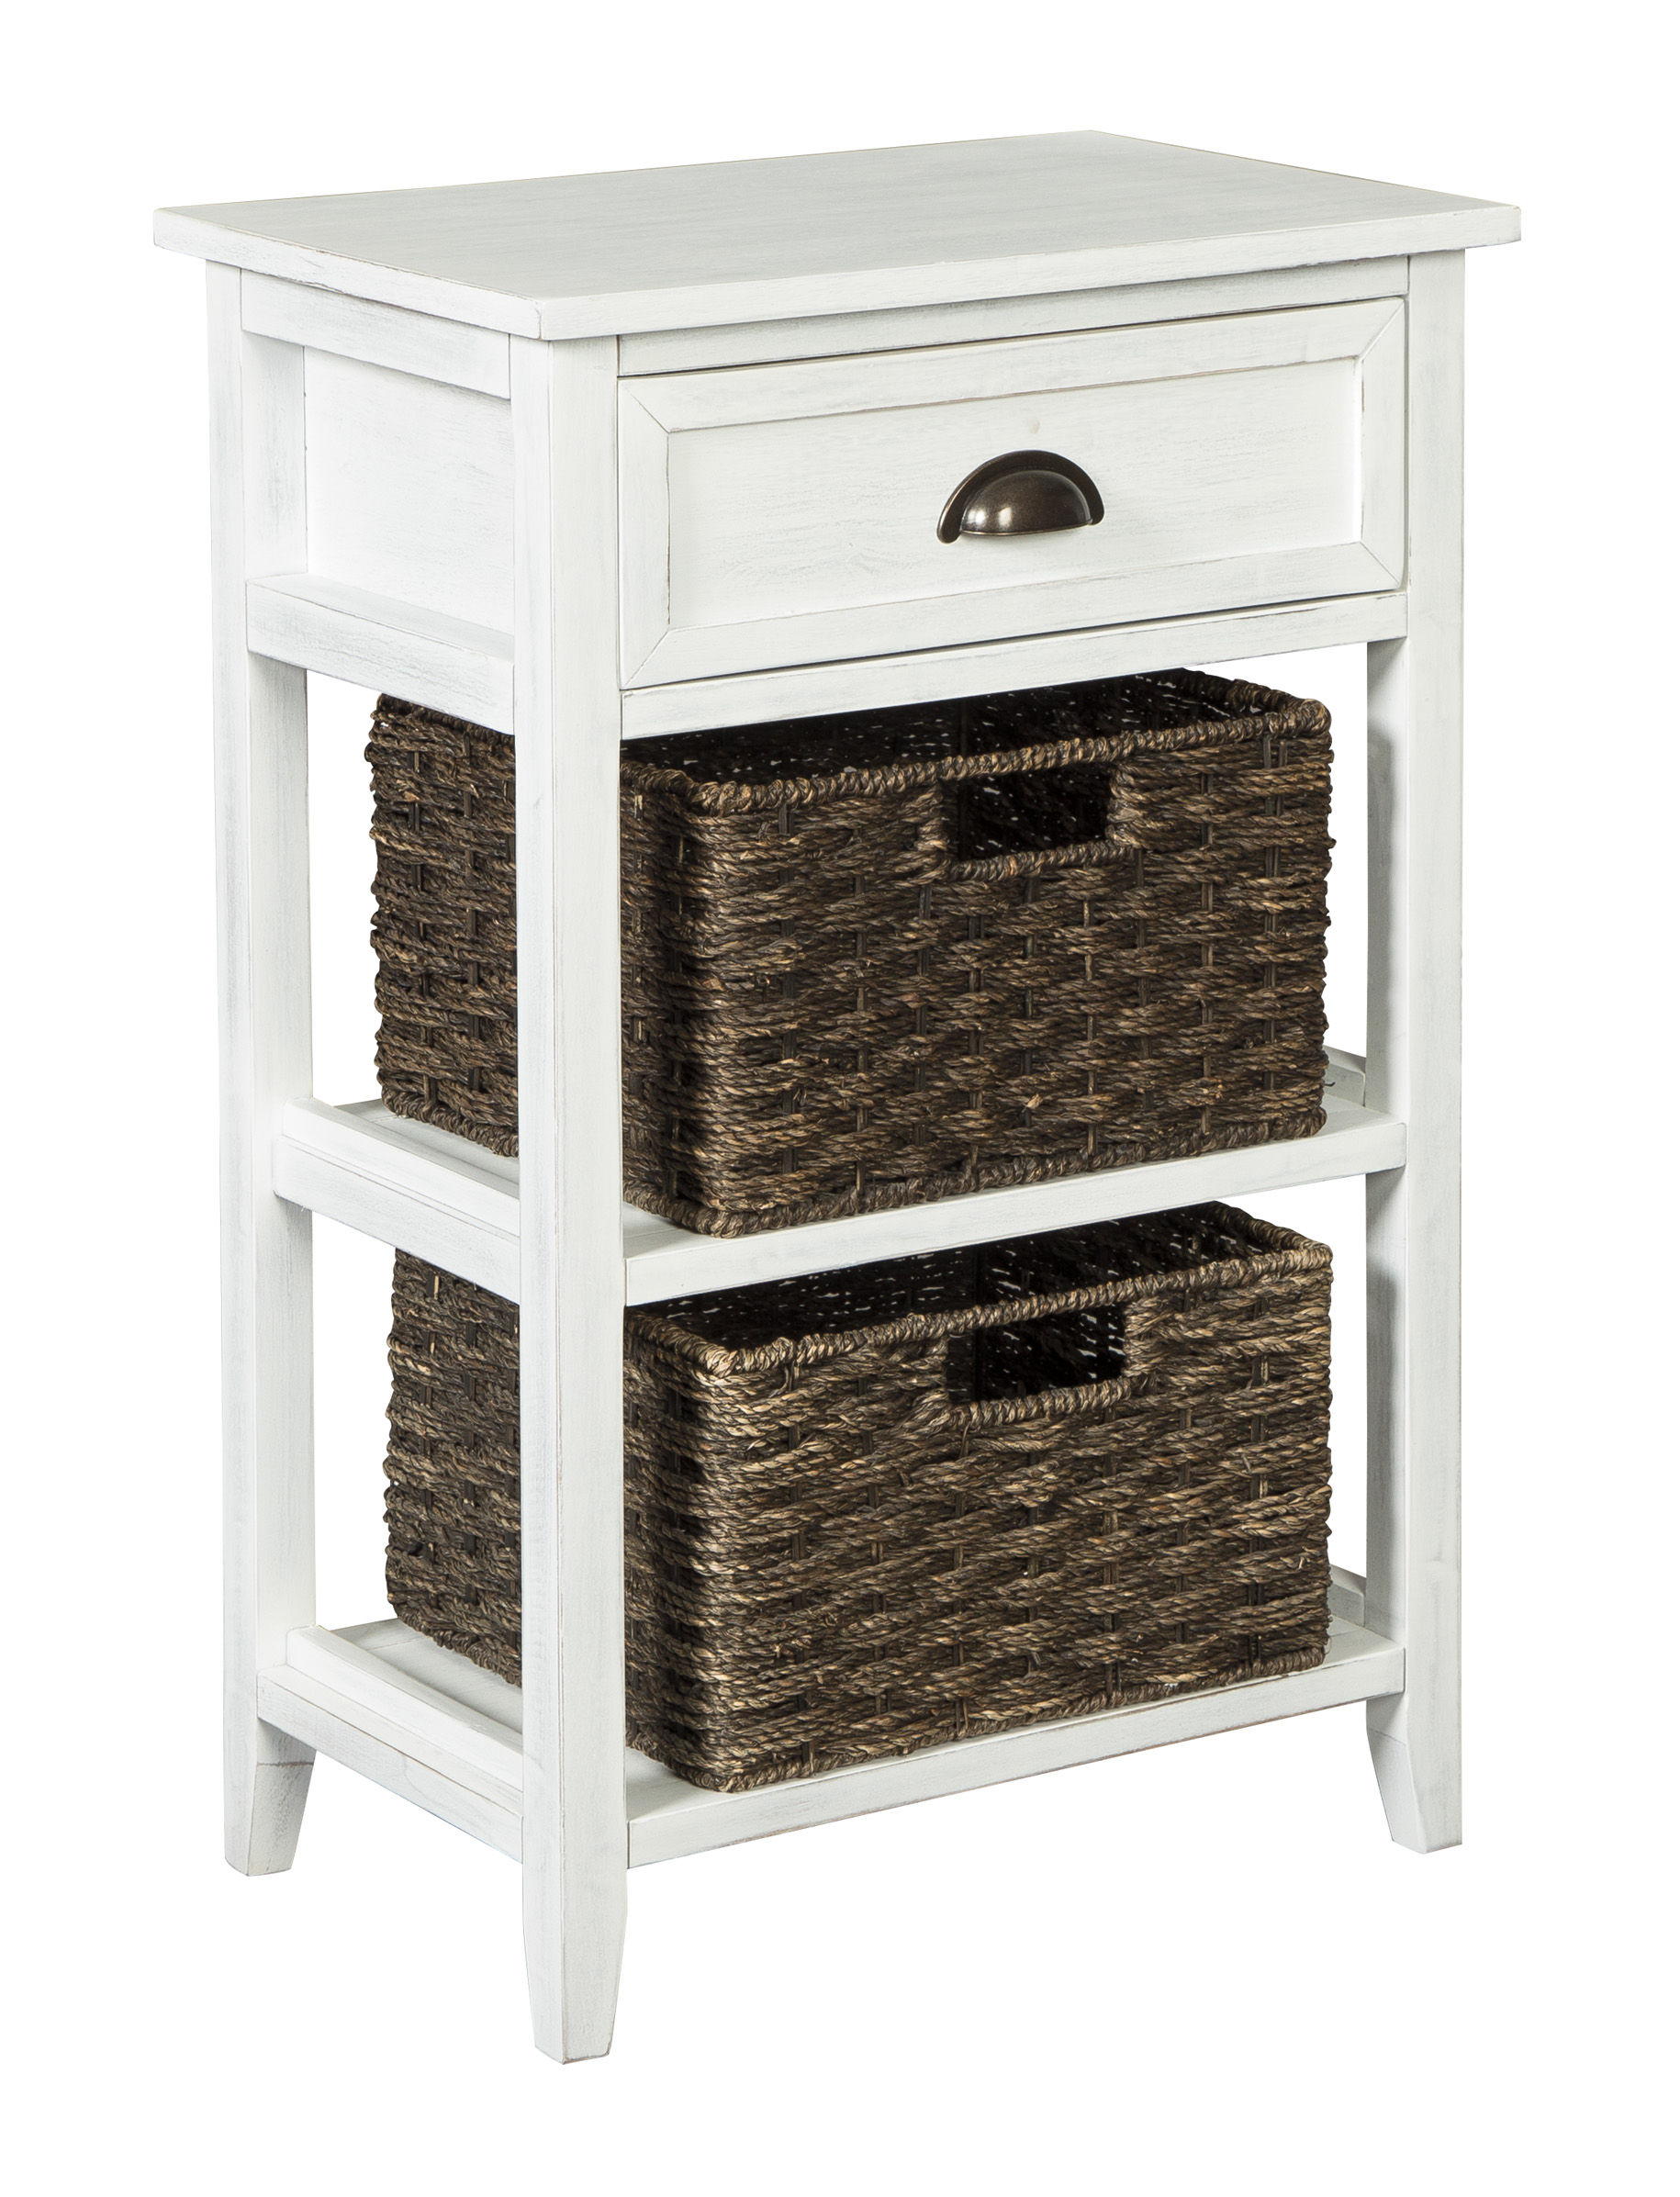 ashley furniture oslember white accent table the classy home ash tables antique end with leather inlay halloween quilted runner patterns clear and gold coffee tall mirrored